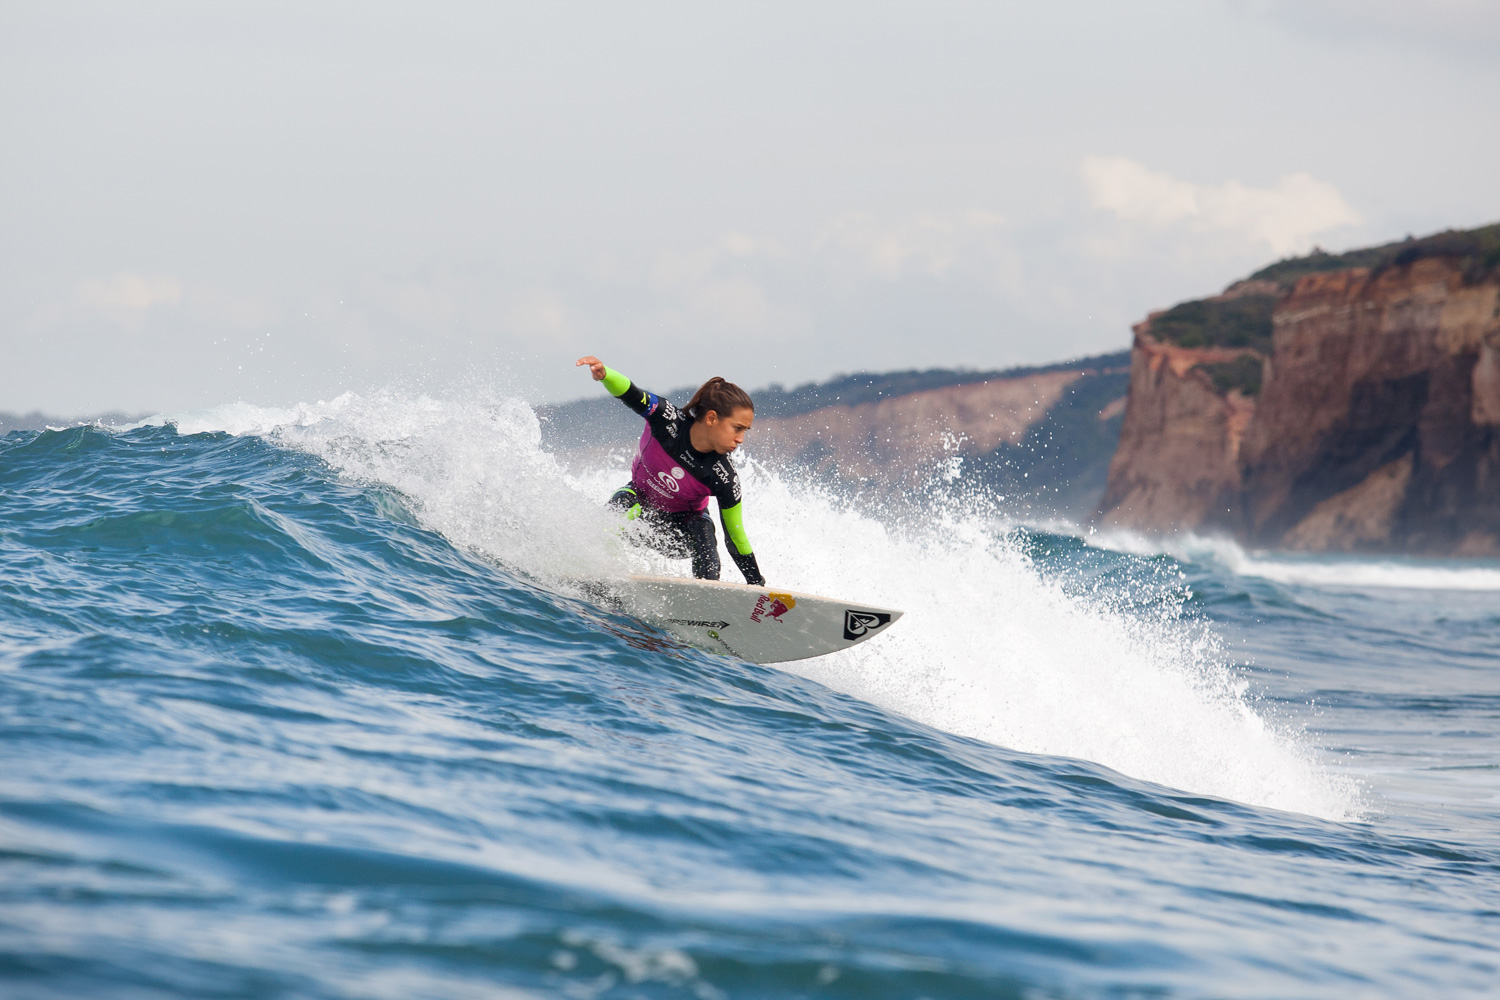 As the heat came to a close, Sally Fitzgibbons pulled out the win to advance into Round 3 of the Rip Curl Pro Bells Beach.